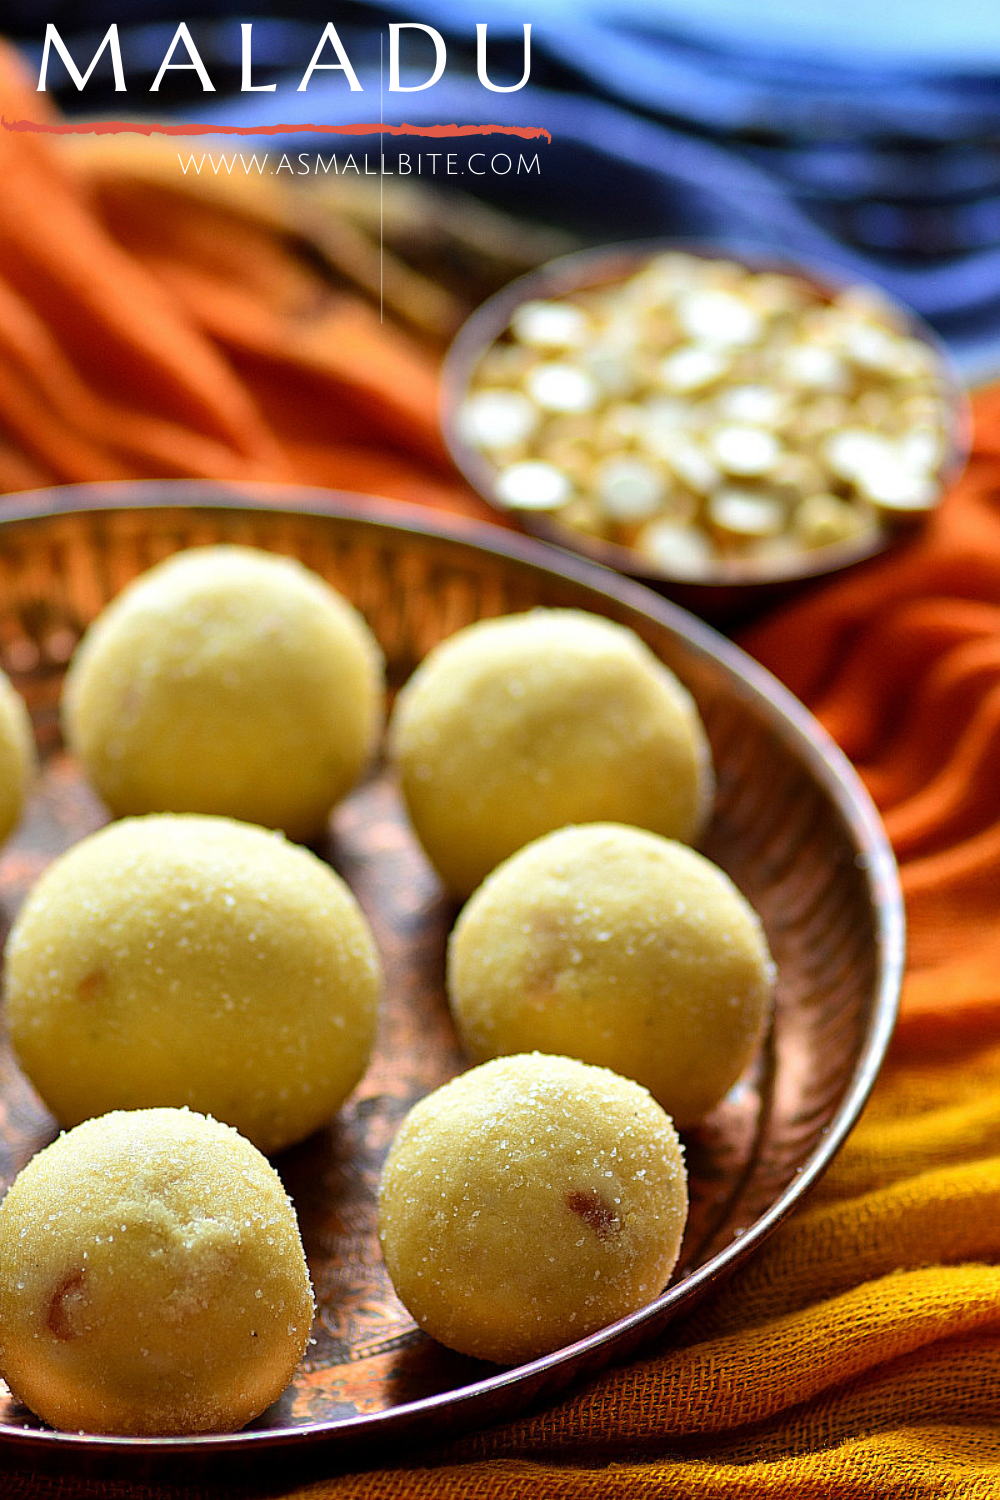 Maladu Recipe | Maa Ladoo Recipe | Maa Laddu is nothing but a sweet recipe prepared with fried gram. It is a very simple and easy to prepare ladoo within 20 minutes. #maaladoo #maaladdu #maaladoorecipe #maaladdurecipe #ladoorecipe #ladoo #laddu #laddurecipe #maladu #maladurecipe #friedgramladoo #roastedgramladoo #asmallbite #indiansweets #diwalirecipes